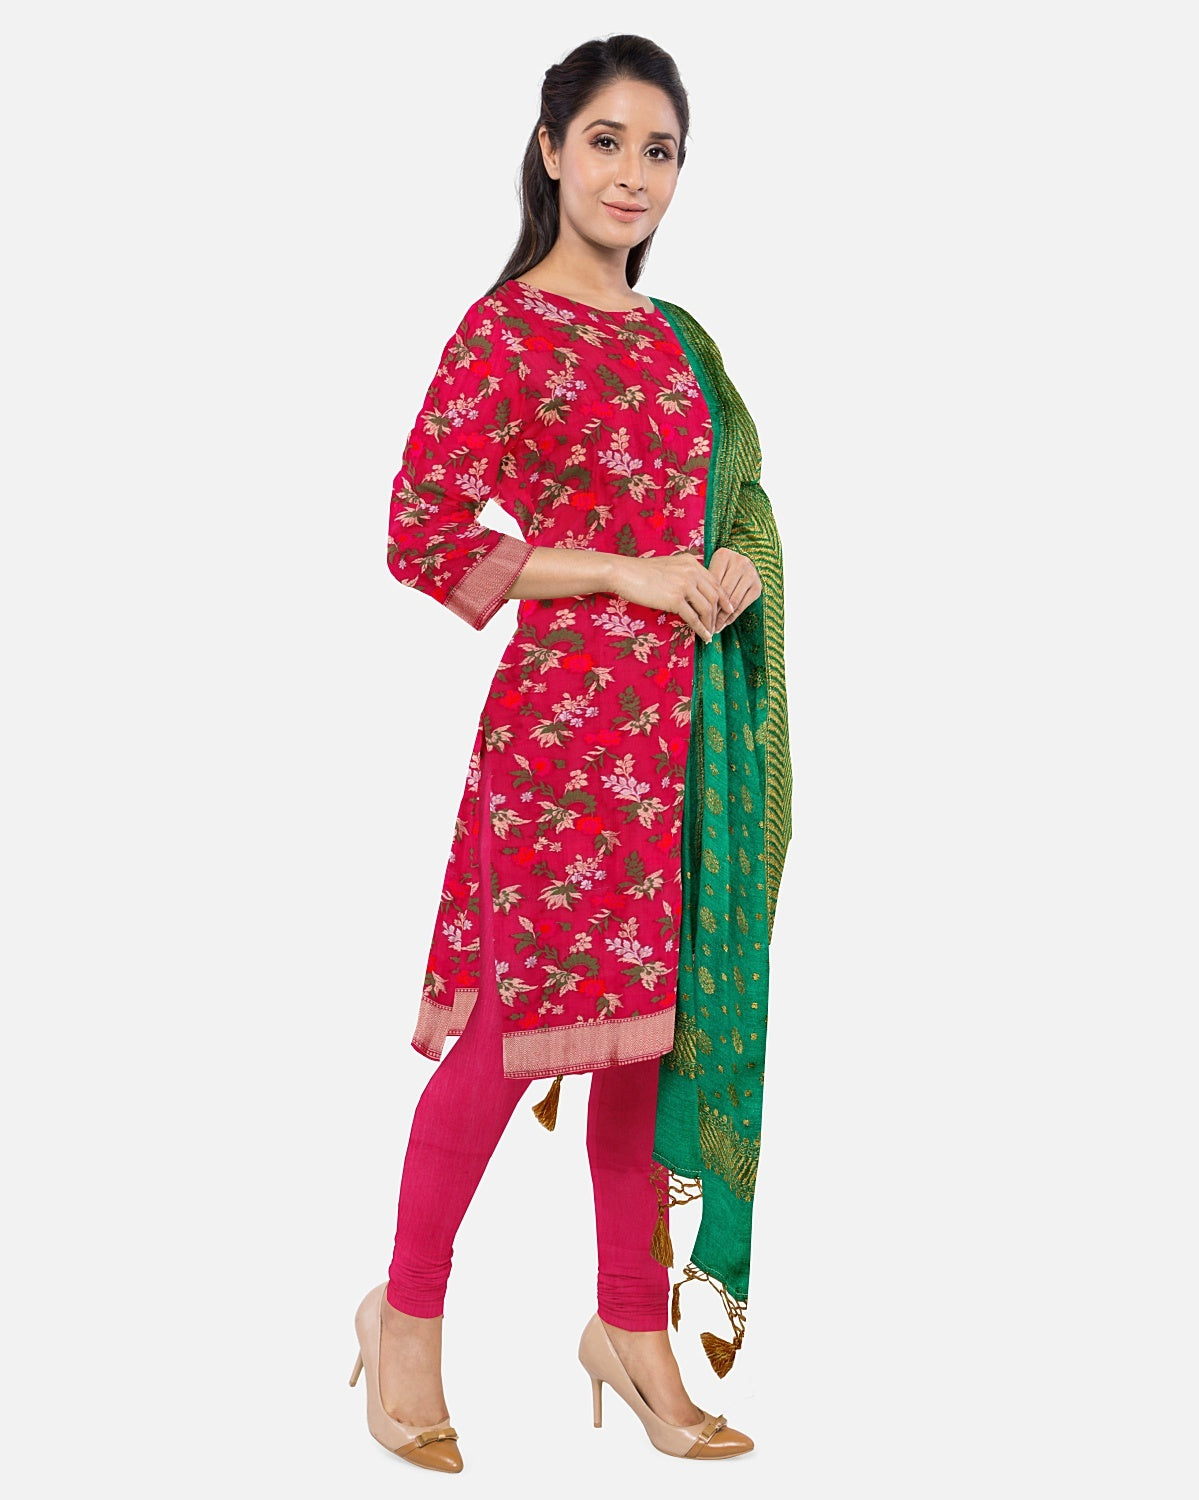 Rani Pink Silk Brocade Suit Fabric Set